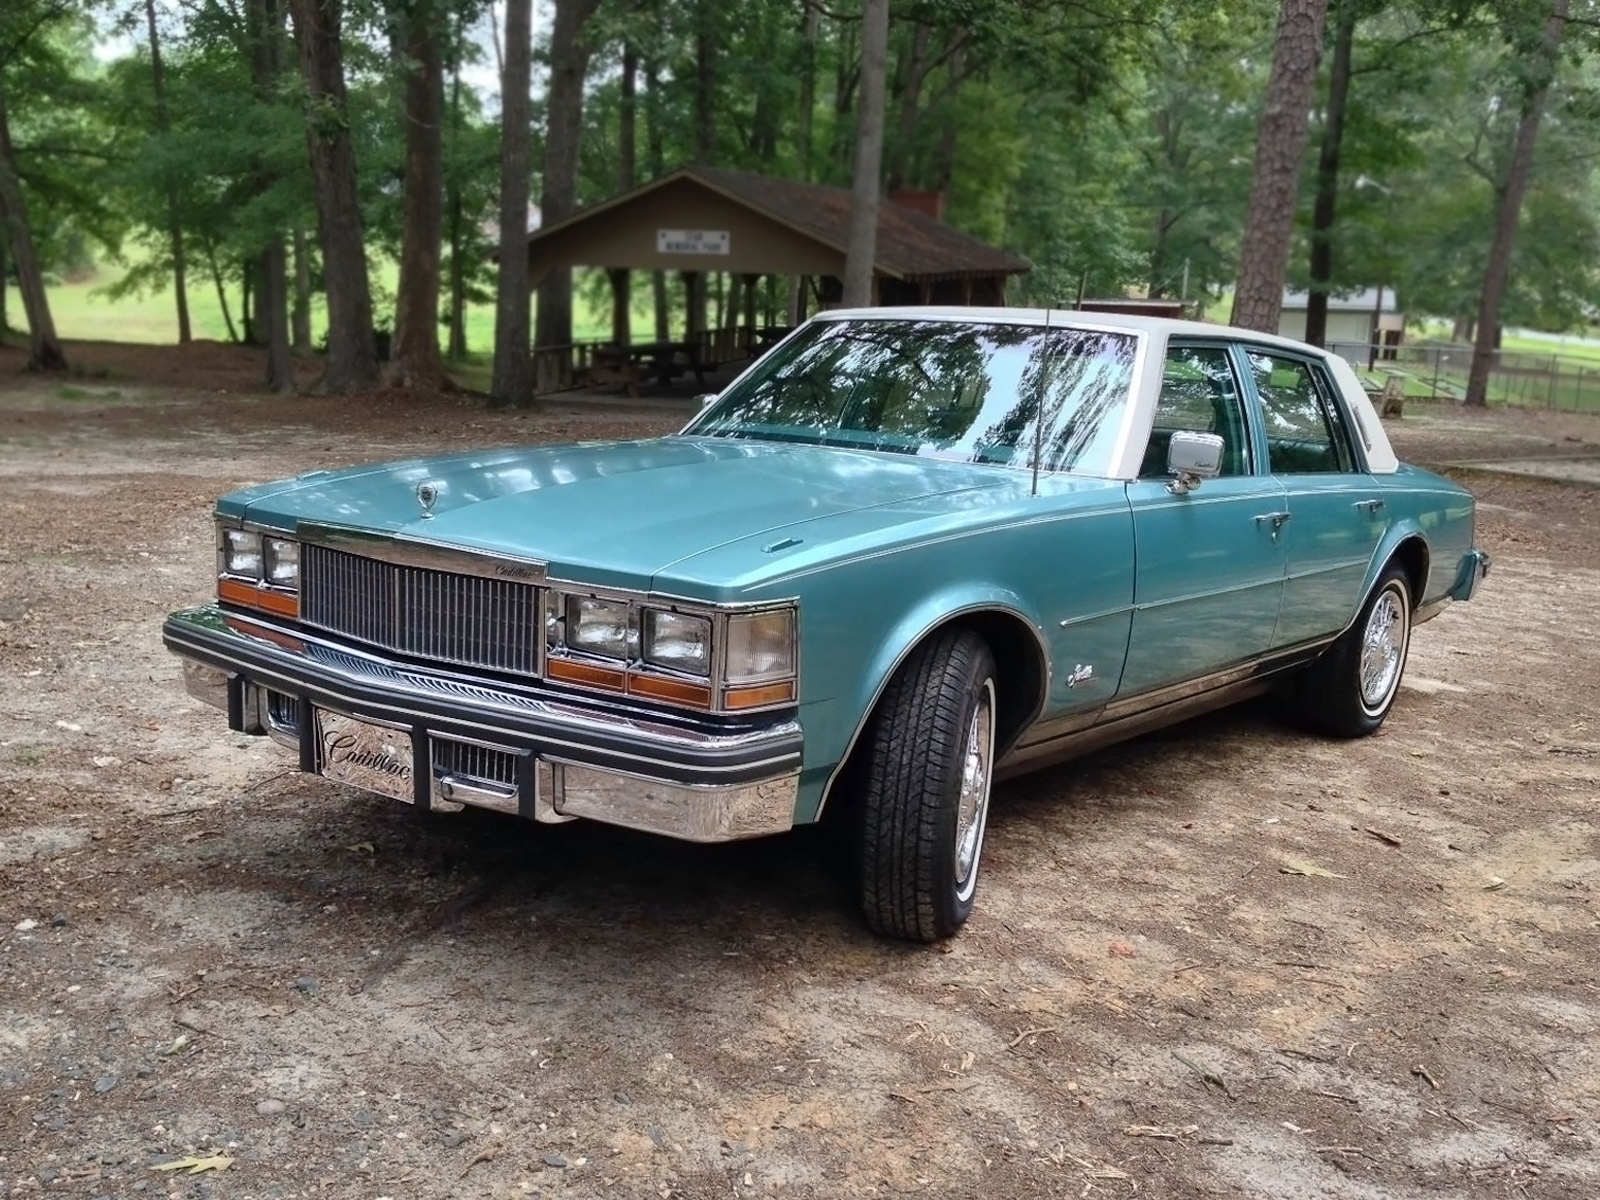 Time Capsule Cadillac: 1979 Cadillac Seville